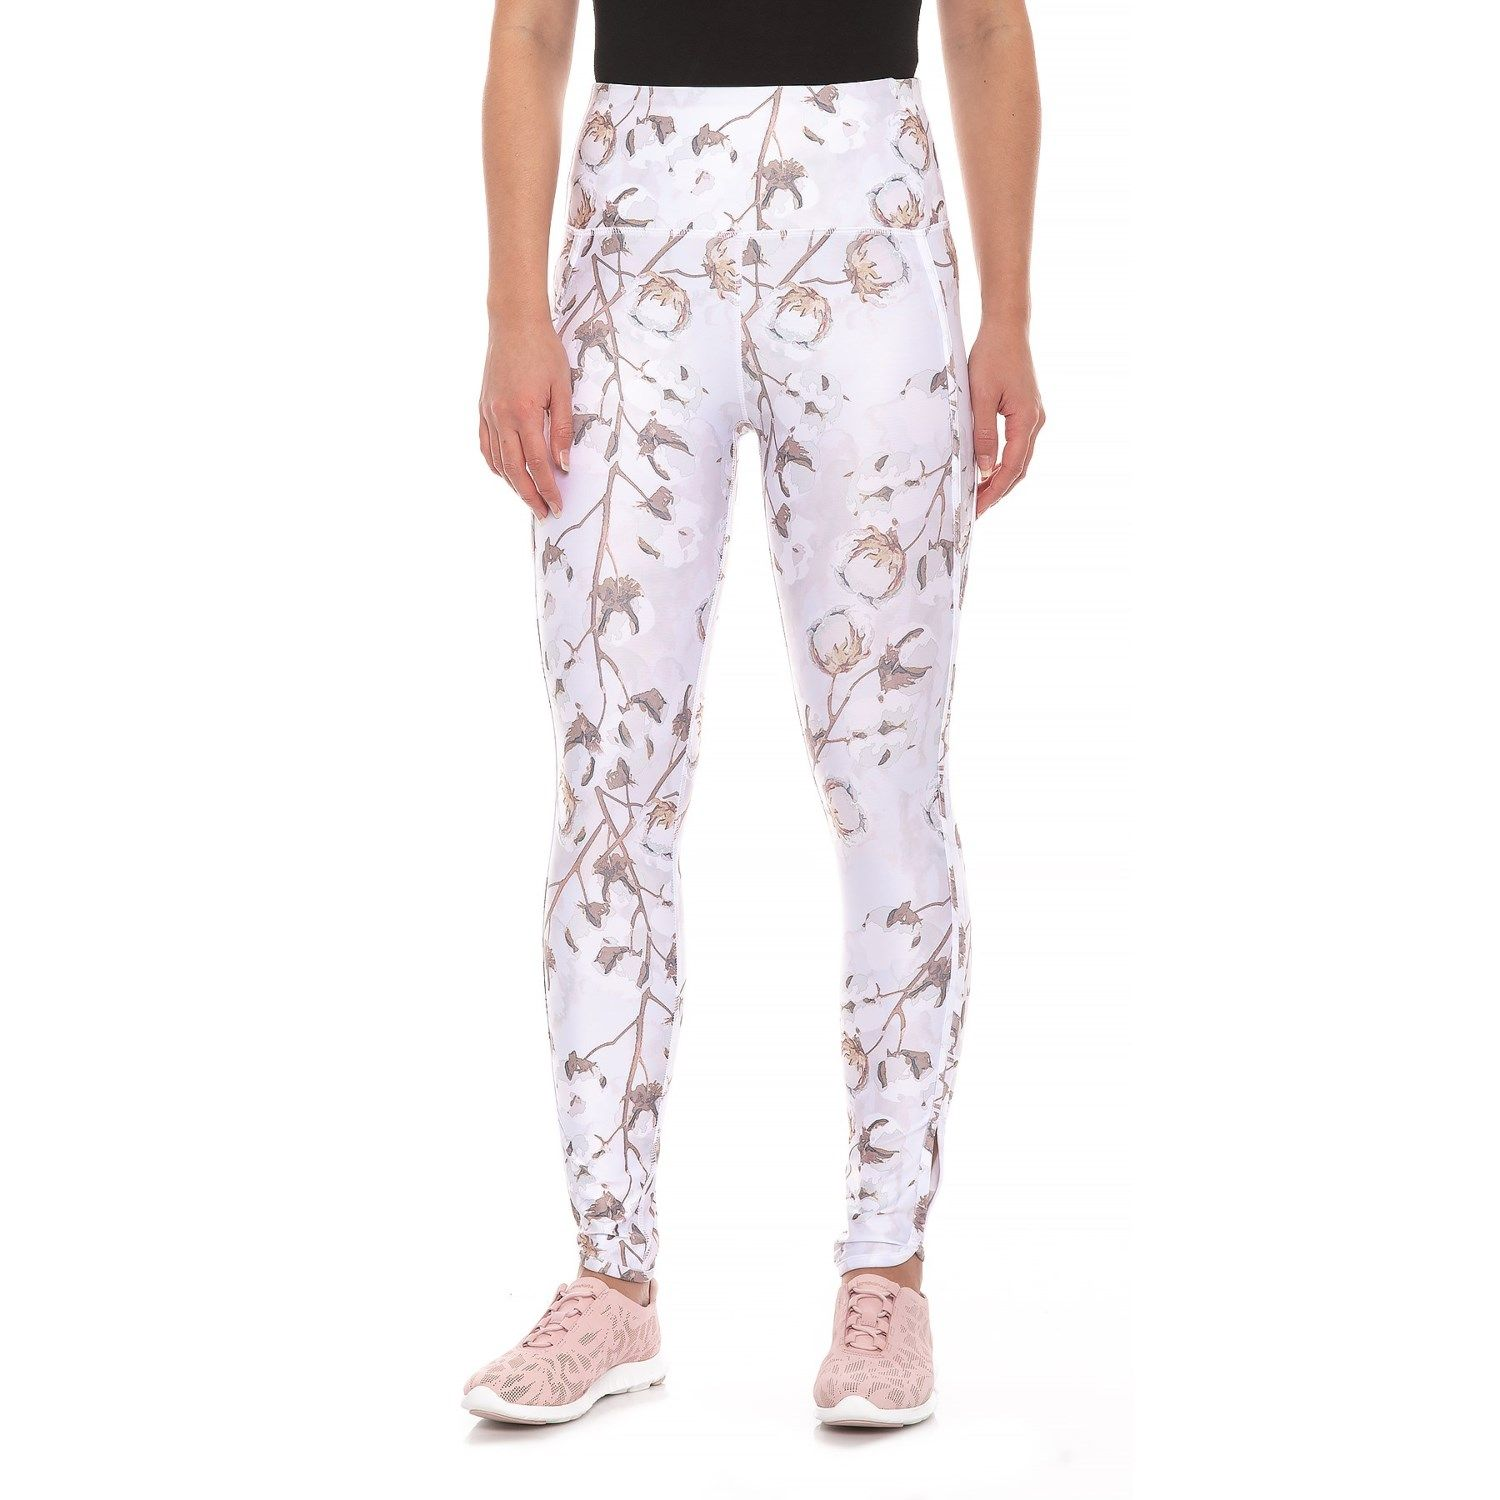 29773ac6ff8a61 Kyodan Tulip Hem Printed Leggings (For Women) in Cotton Blossom, Leaves at  Sierra Trading Post. Celebrating 30 Years Of Exploring.